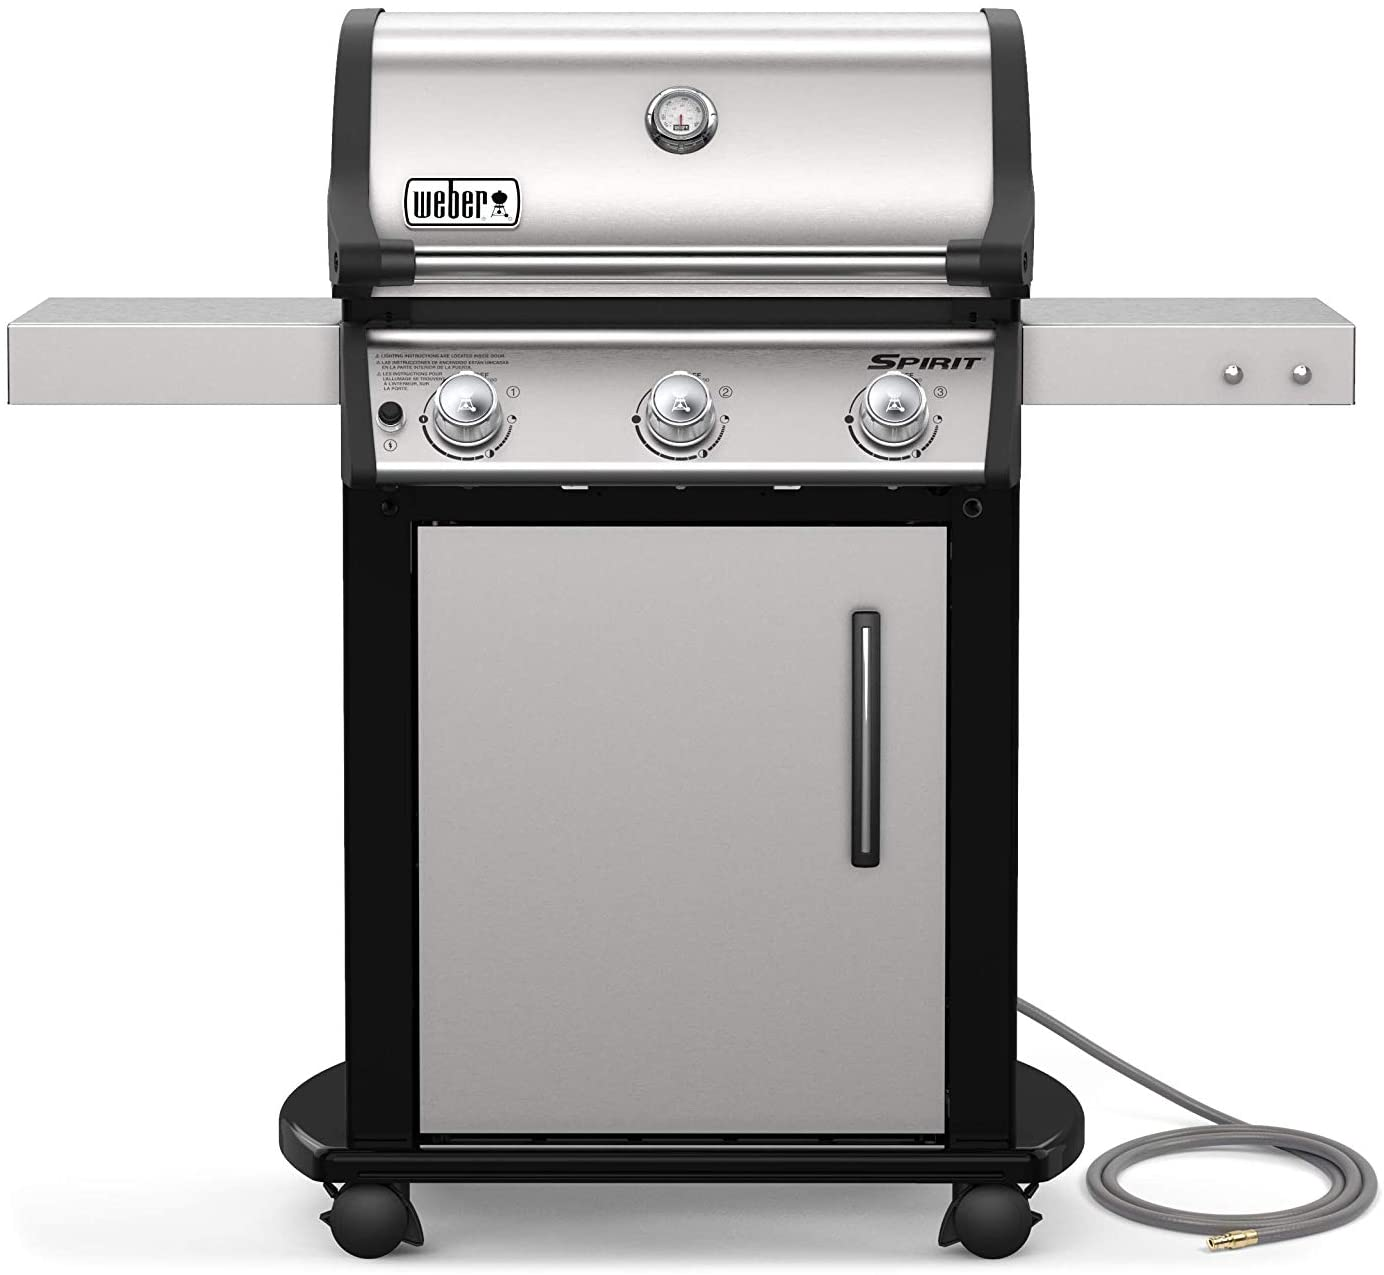 weber-47502001-spirit-s-315-ng-gas-grill-stainless-steel